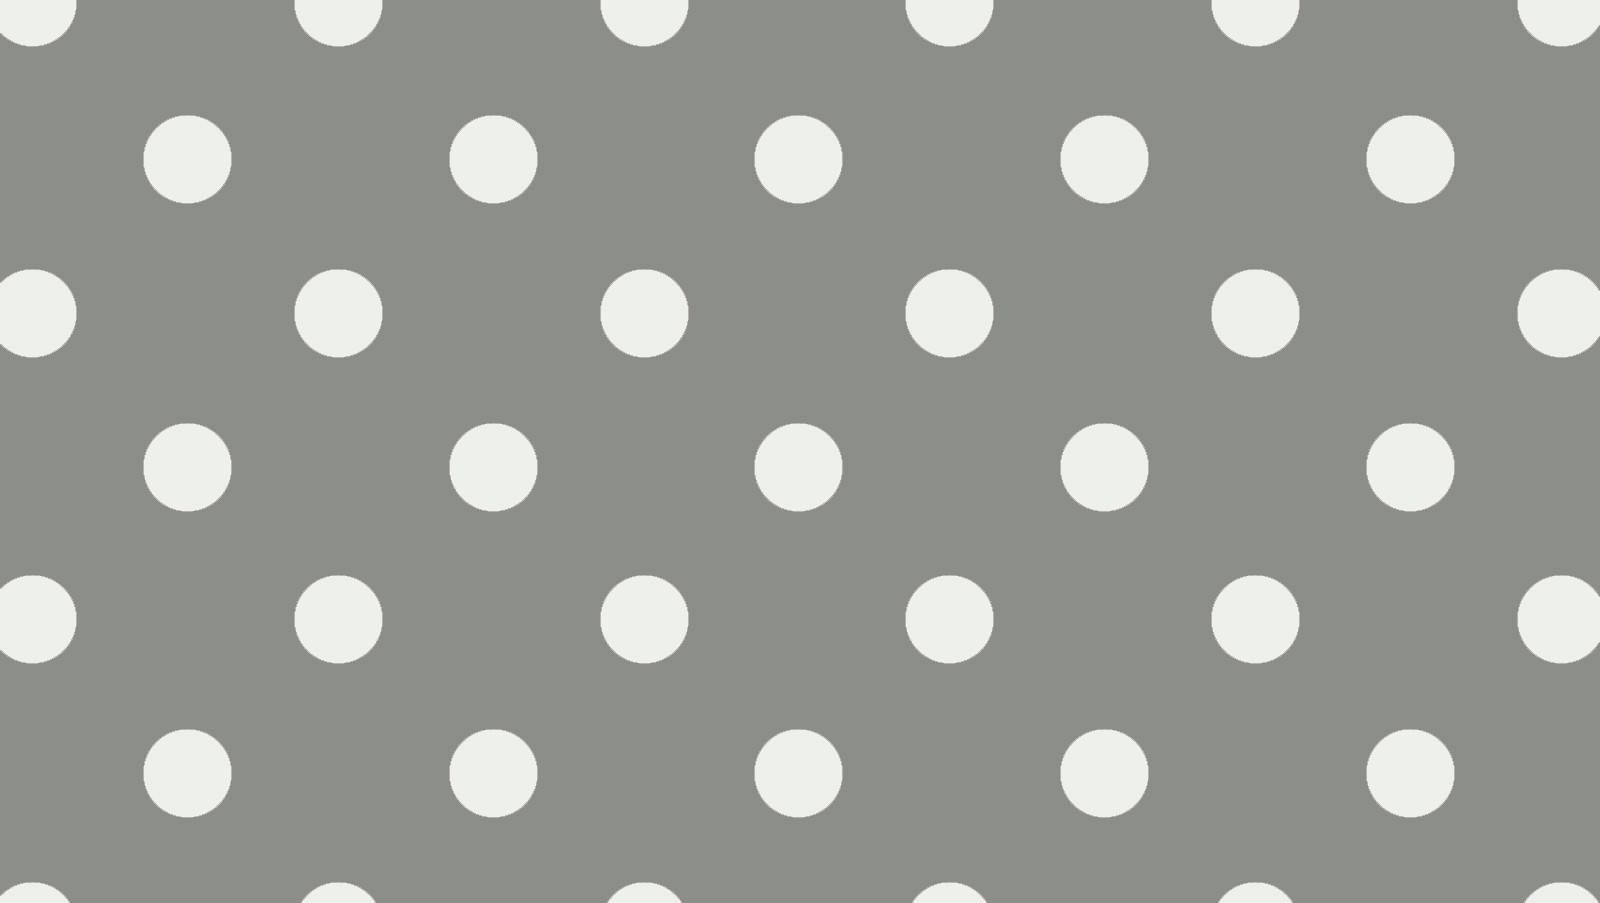 Polka Dots Cliparts